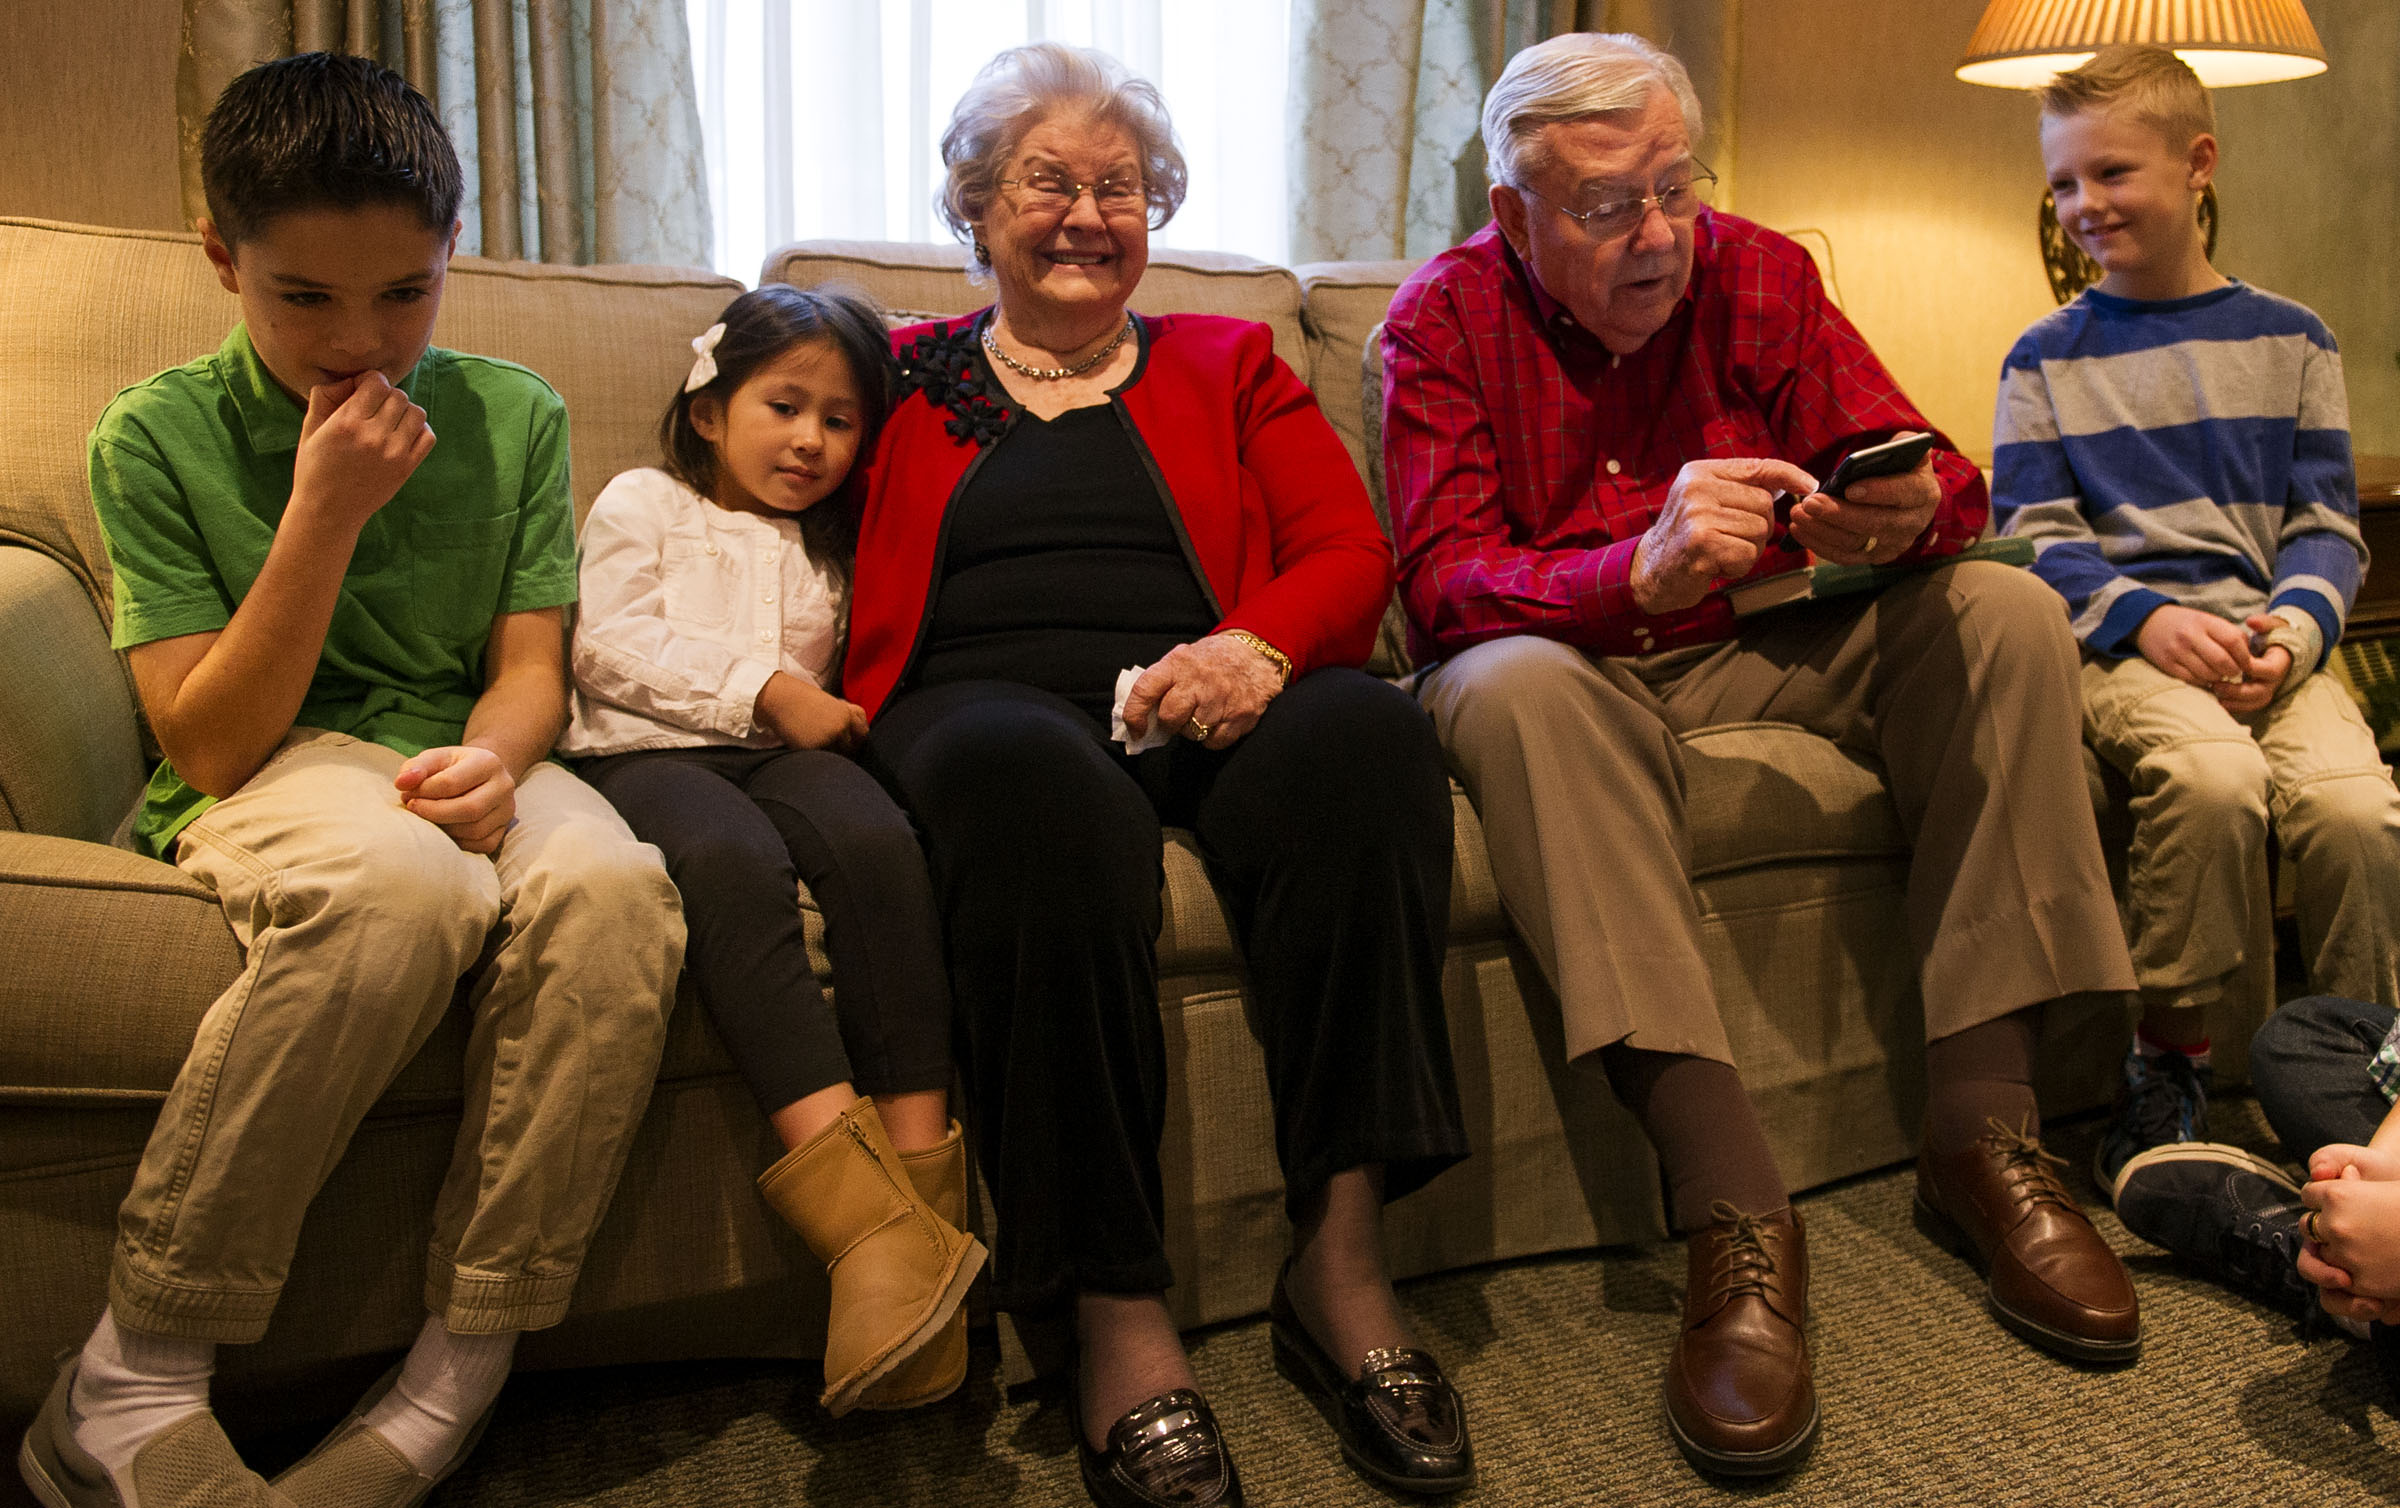 Sister Barbara B. Ballard, center, laughs while her husband, Elder M. Russell Ballard, reads a missionary's report to family members during a family council meeting in Salt Lake City on Monday, Dec. 26, 2016.